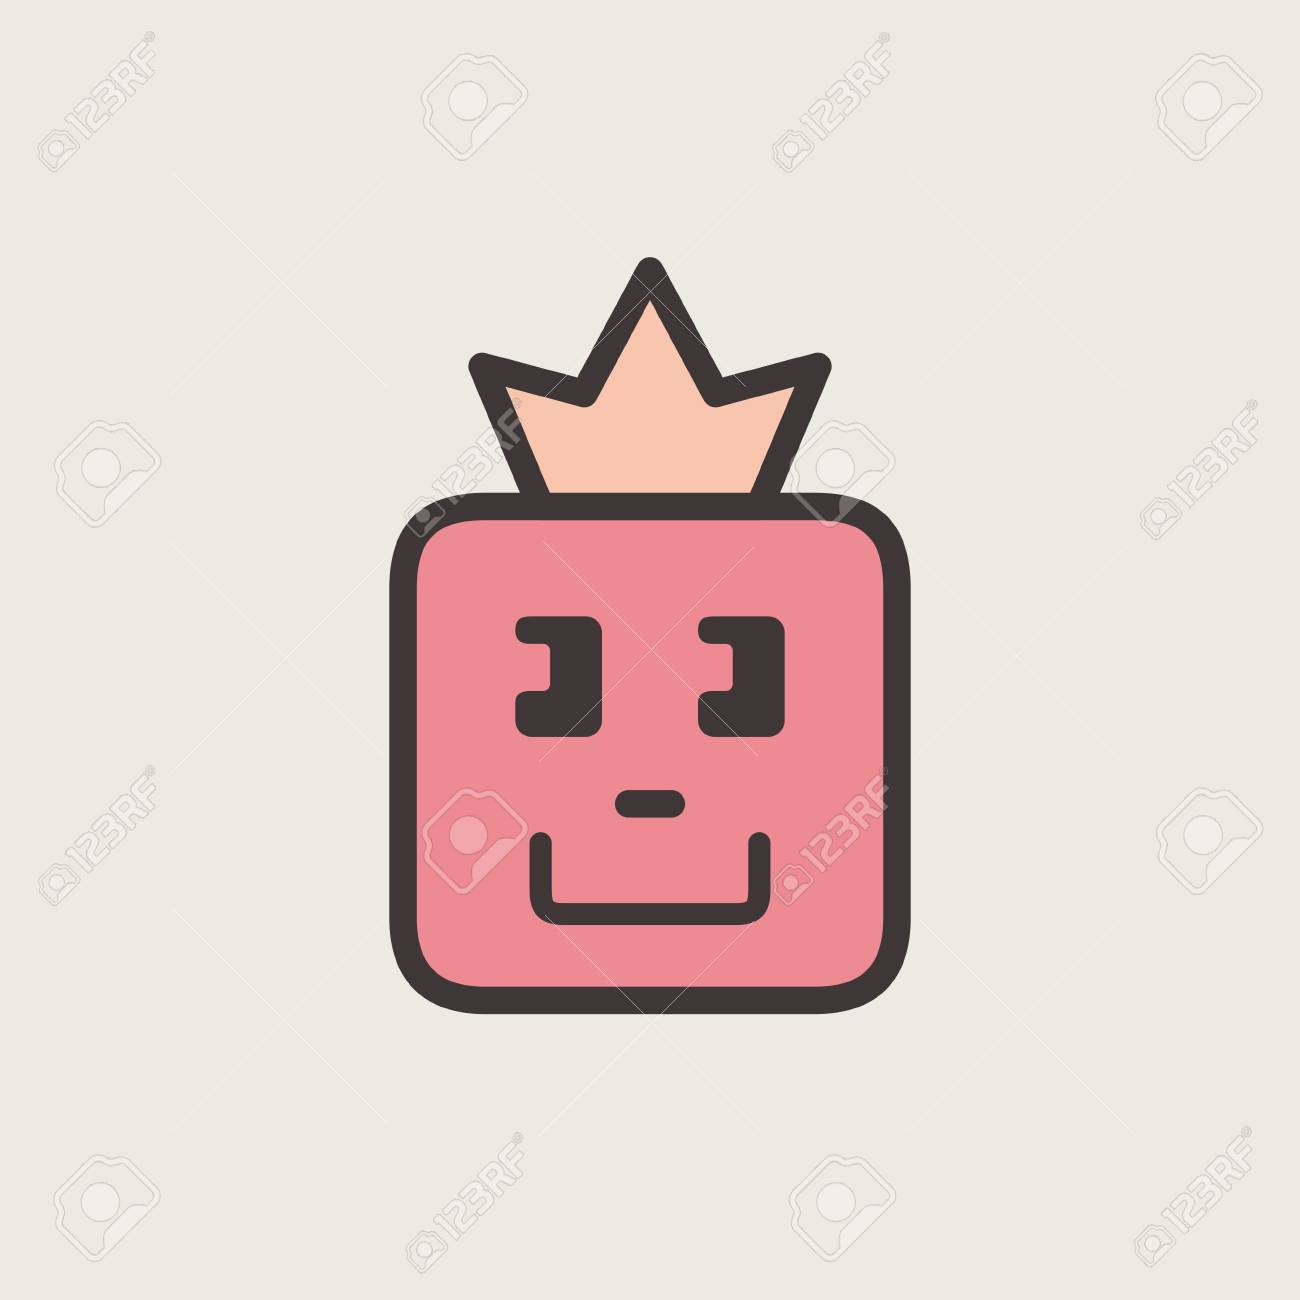 Graphic emoticon emoji face with a crown smile icons isolated graphic emoticon emoji face with a crown smile icons isolated vector illustration biocorpaavc Gallery